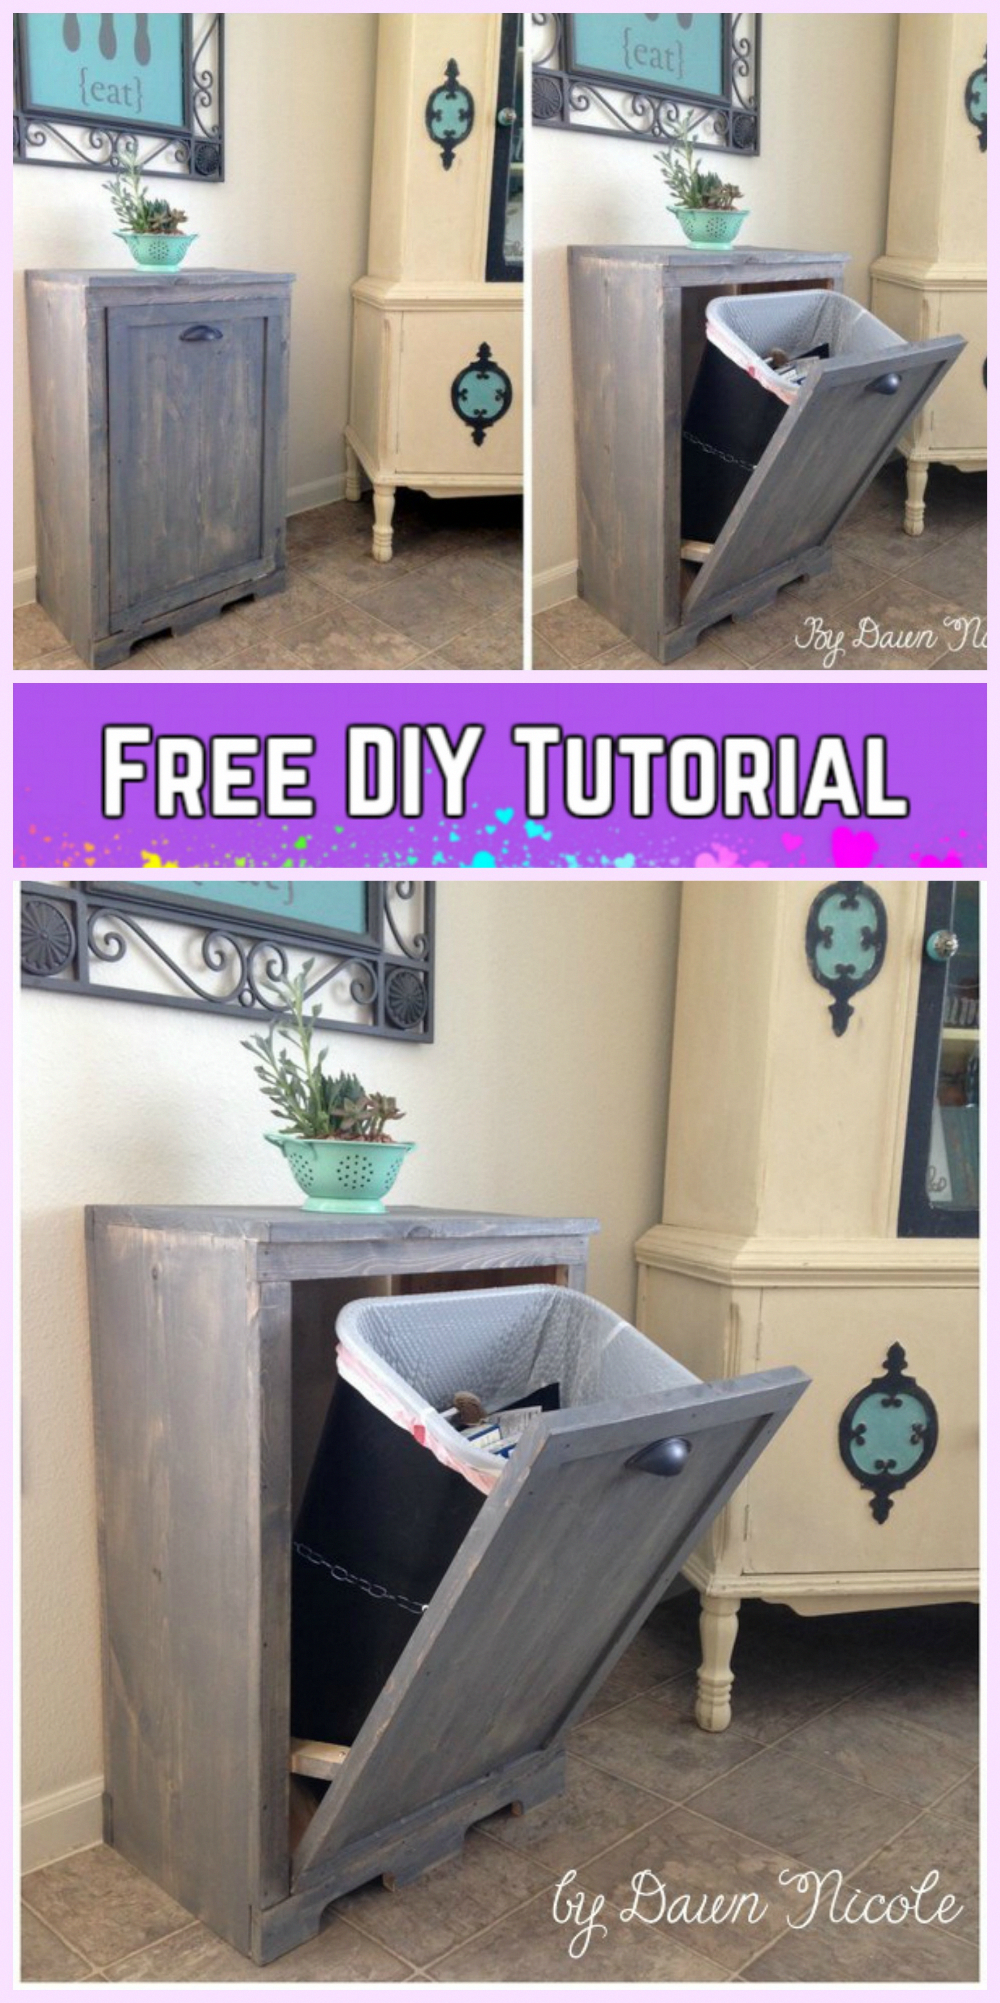 Diy Tilt Out Trash Can Cabinet Tutorials Woodworkingplanswinerack In 2020 Diy Holzprojekte Easy Diy Projekte Diy Holz